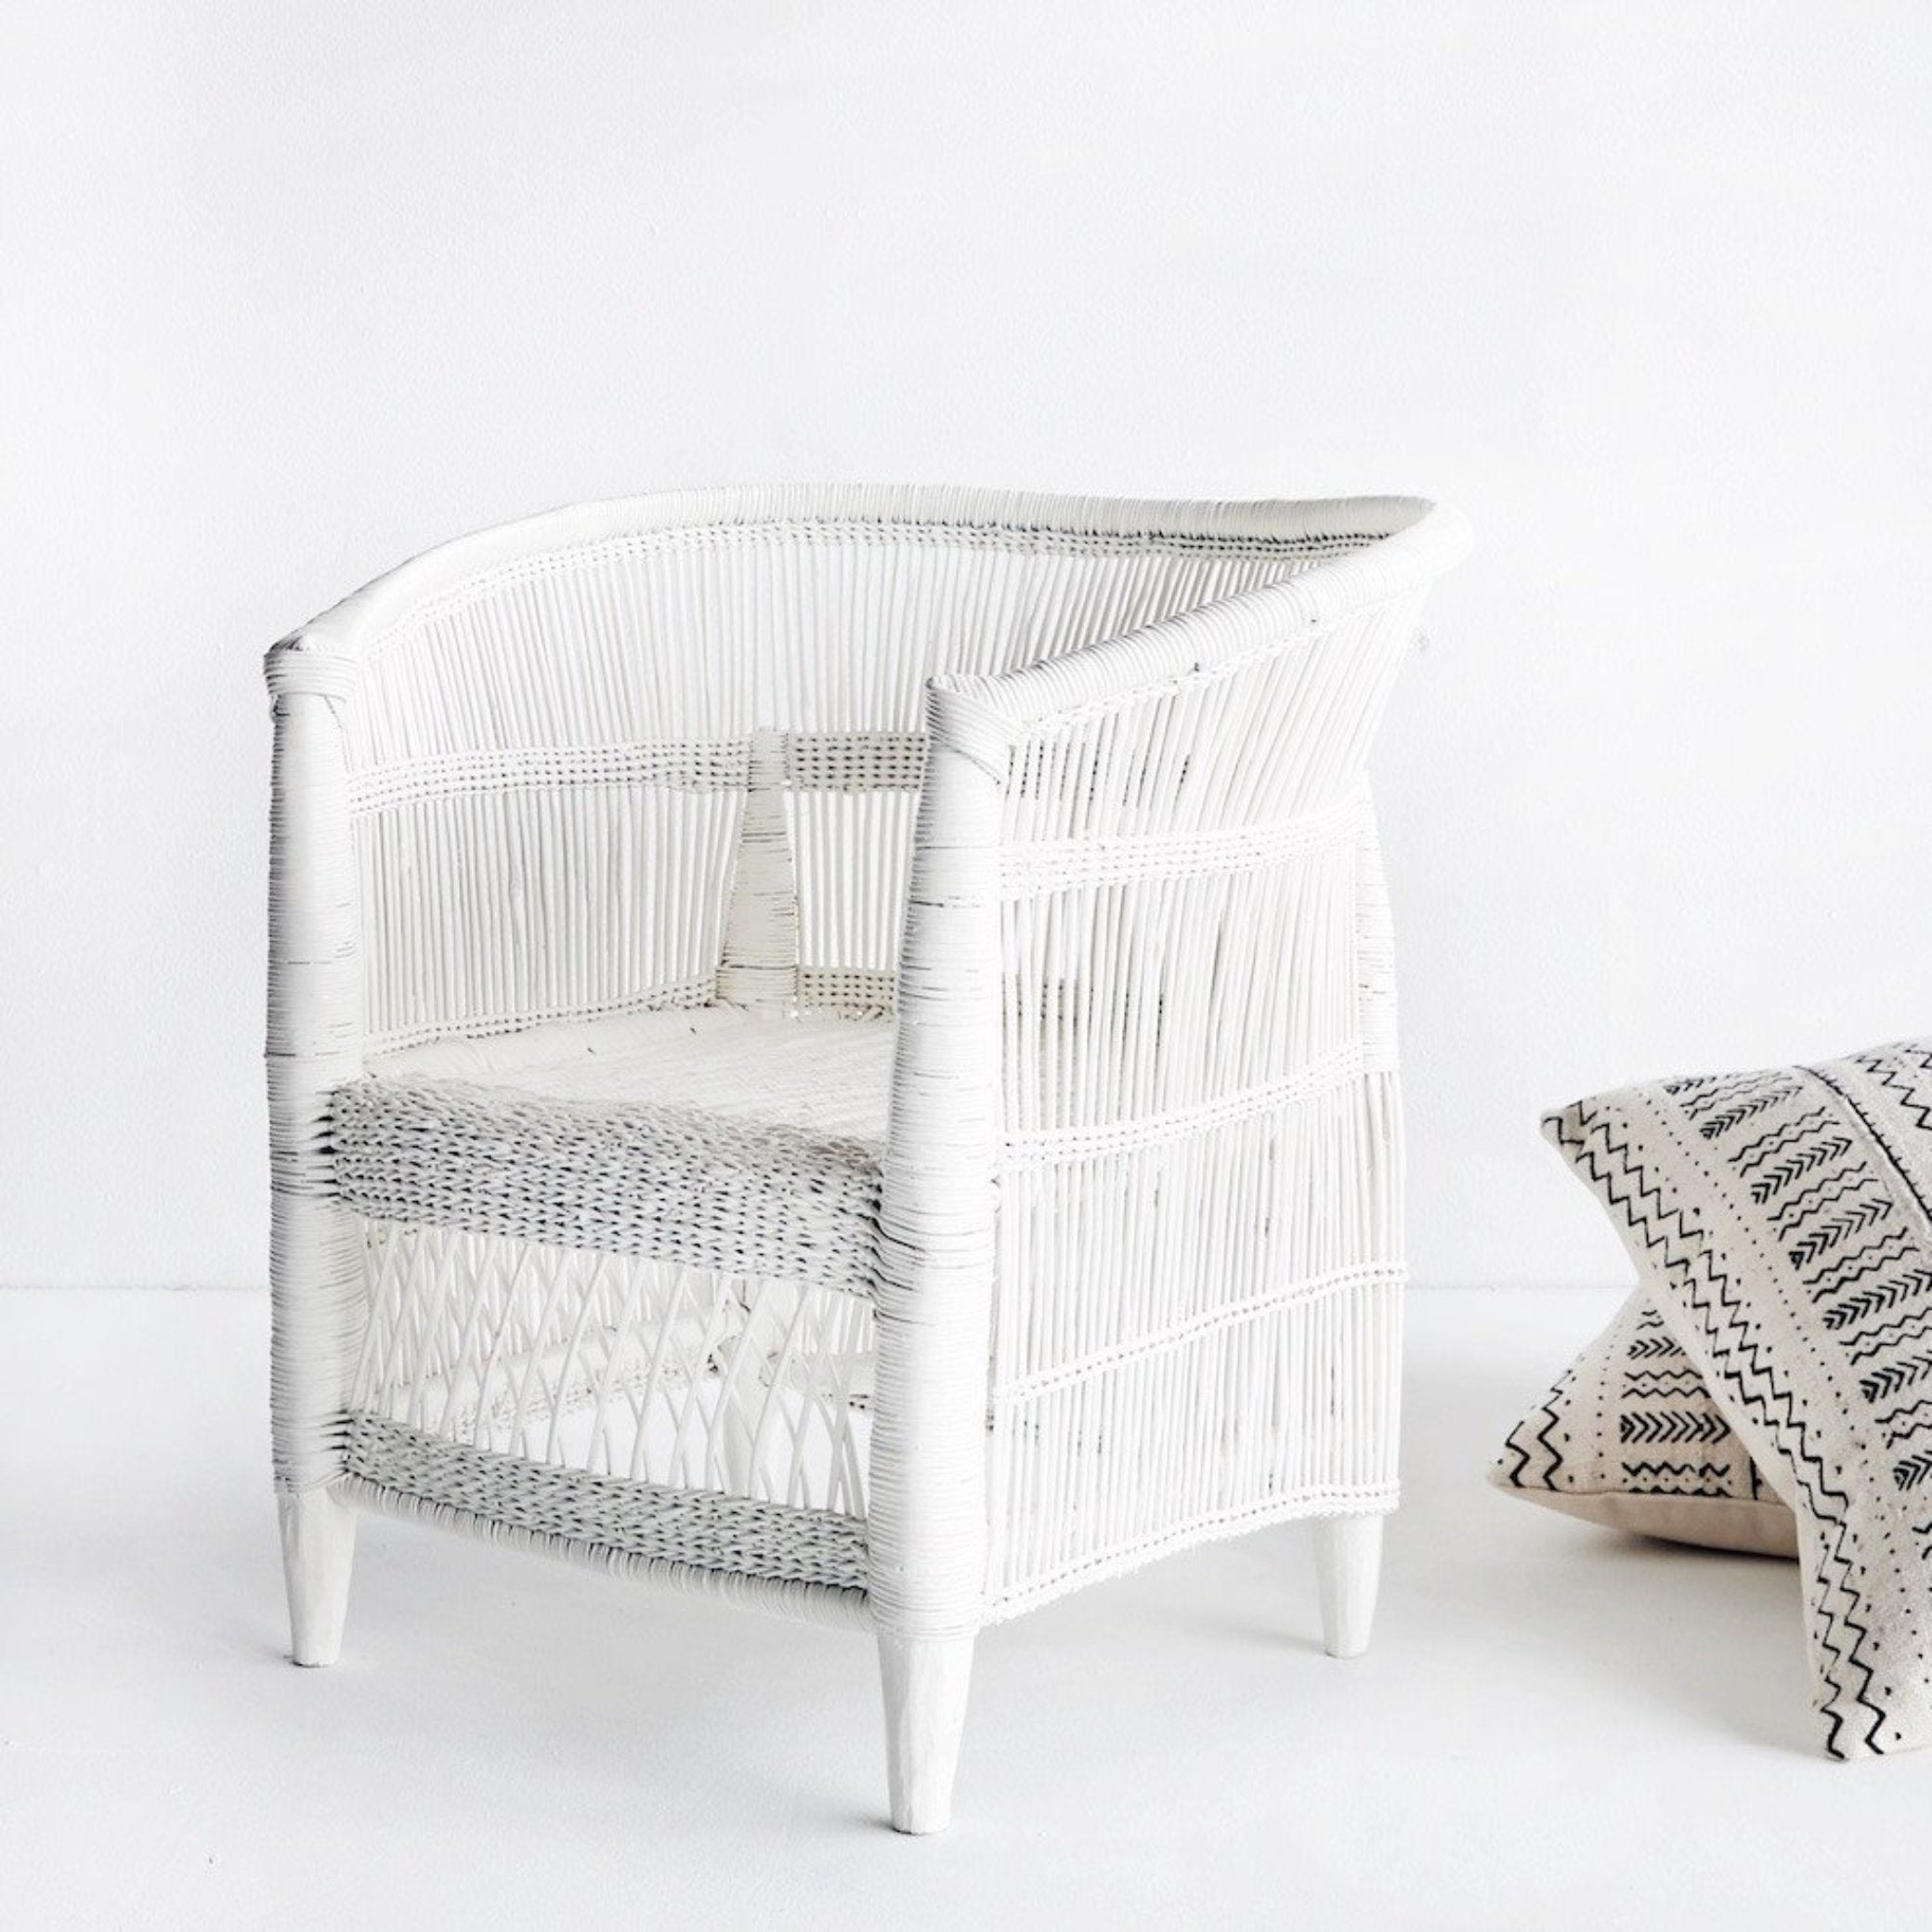 Malawi Kid's Armchair in White-Nomad Tribe-Originals Furniture - 2